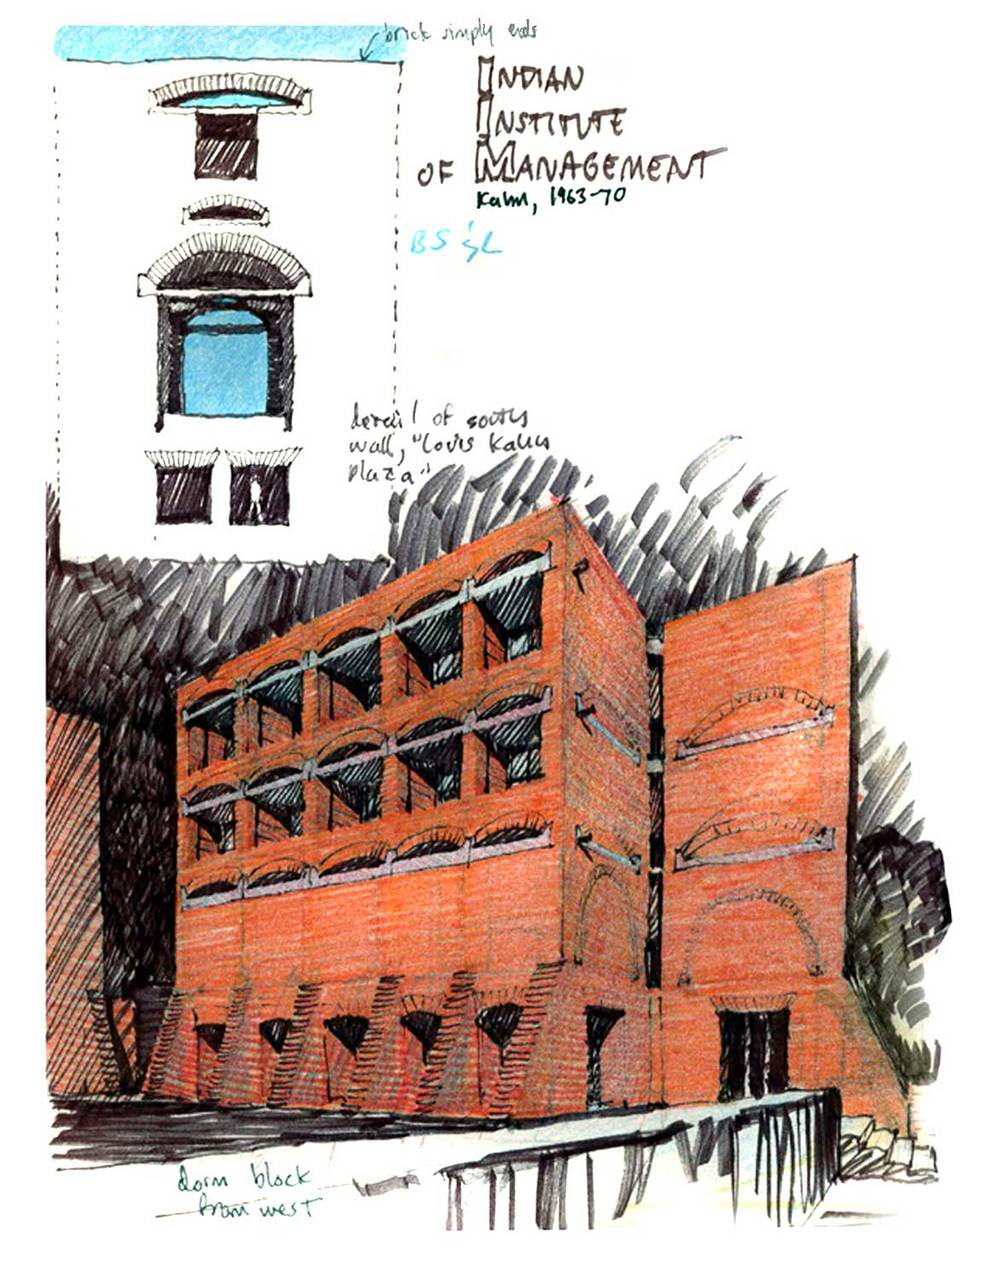 India Institute of Management, Ahmedabad, India.  Felt-tip pen and colored pencil.